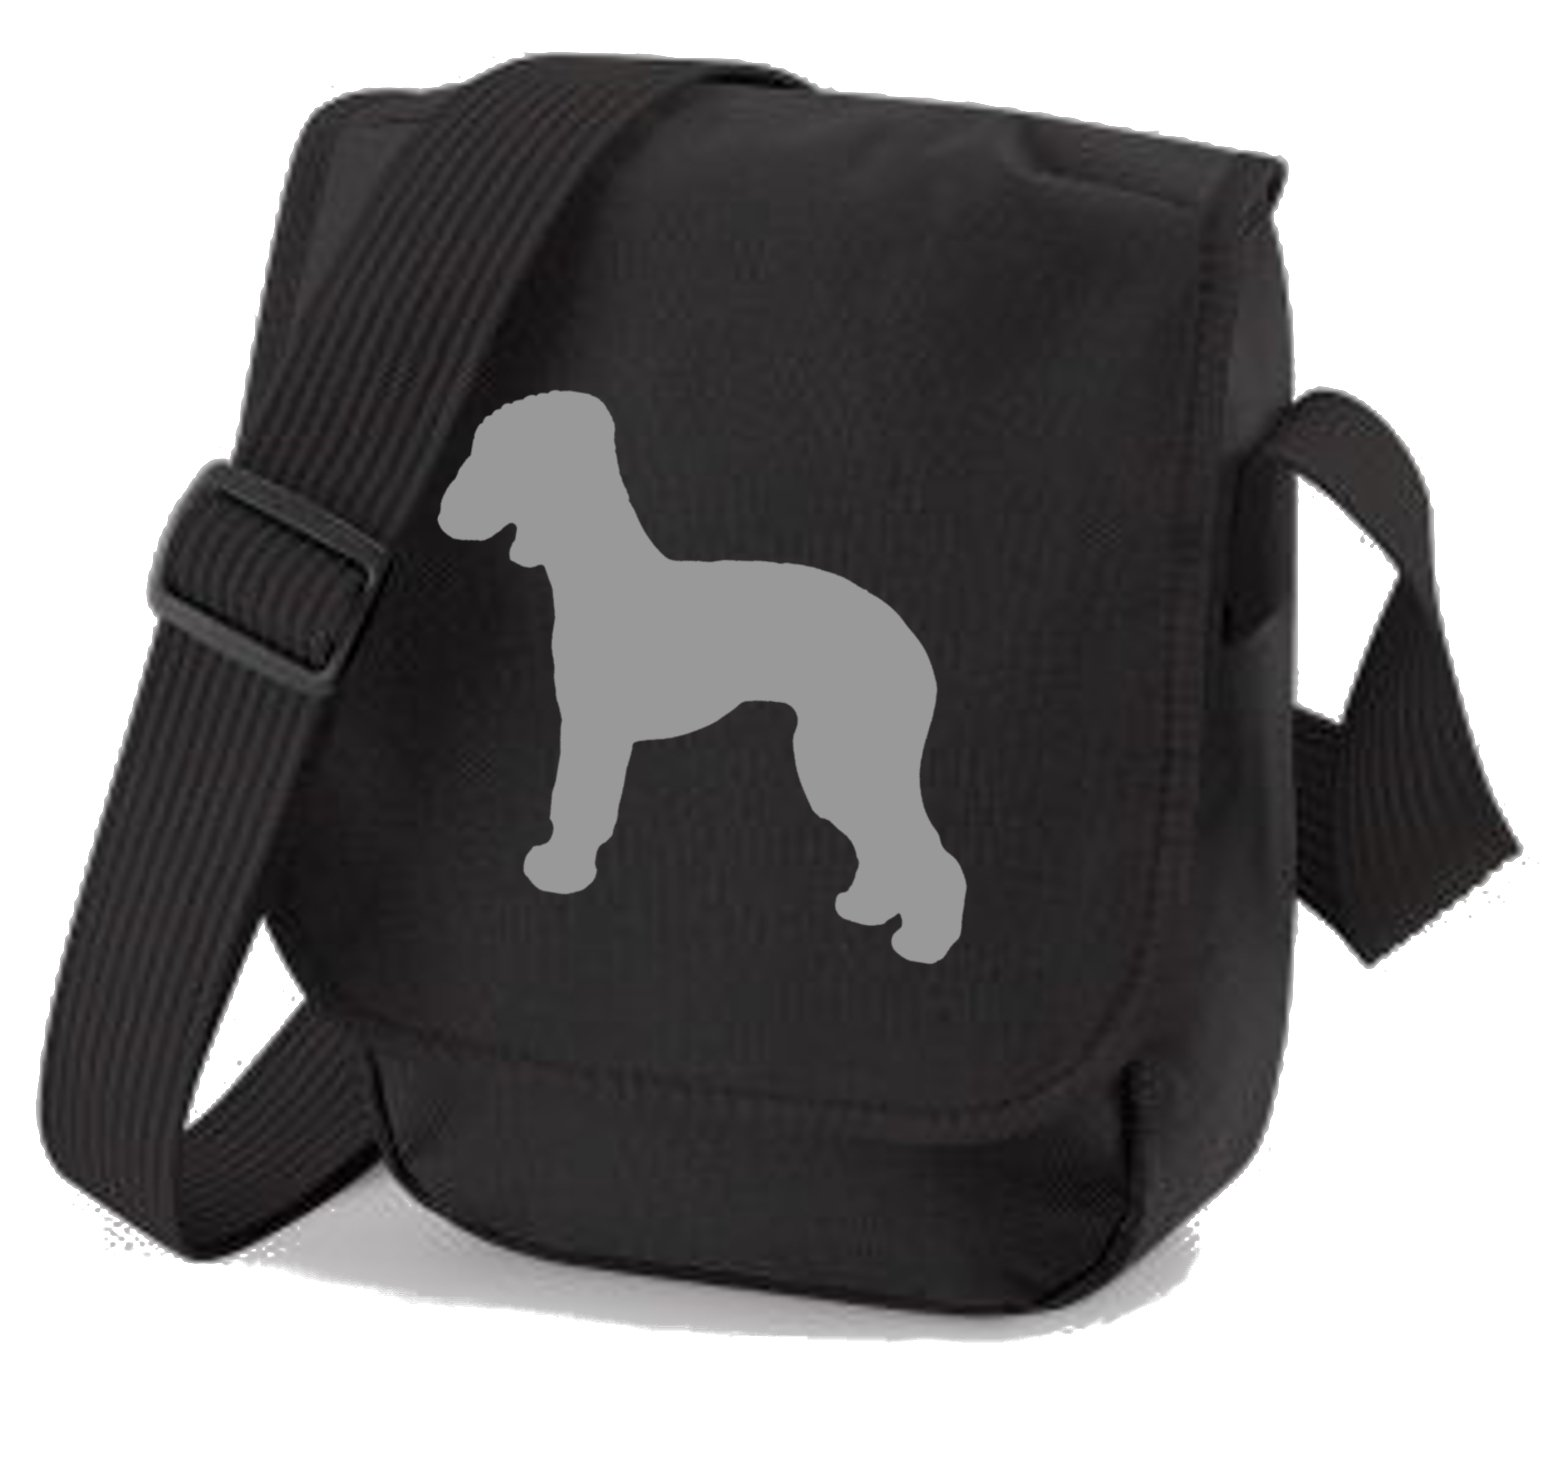 Bedlington Terrier Dog Bag Reporter Bag Shoulder Bag Bedlington Silhouette Bedlngton Gift Choice of Colours